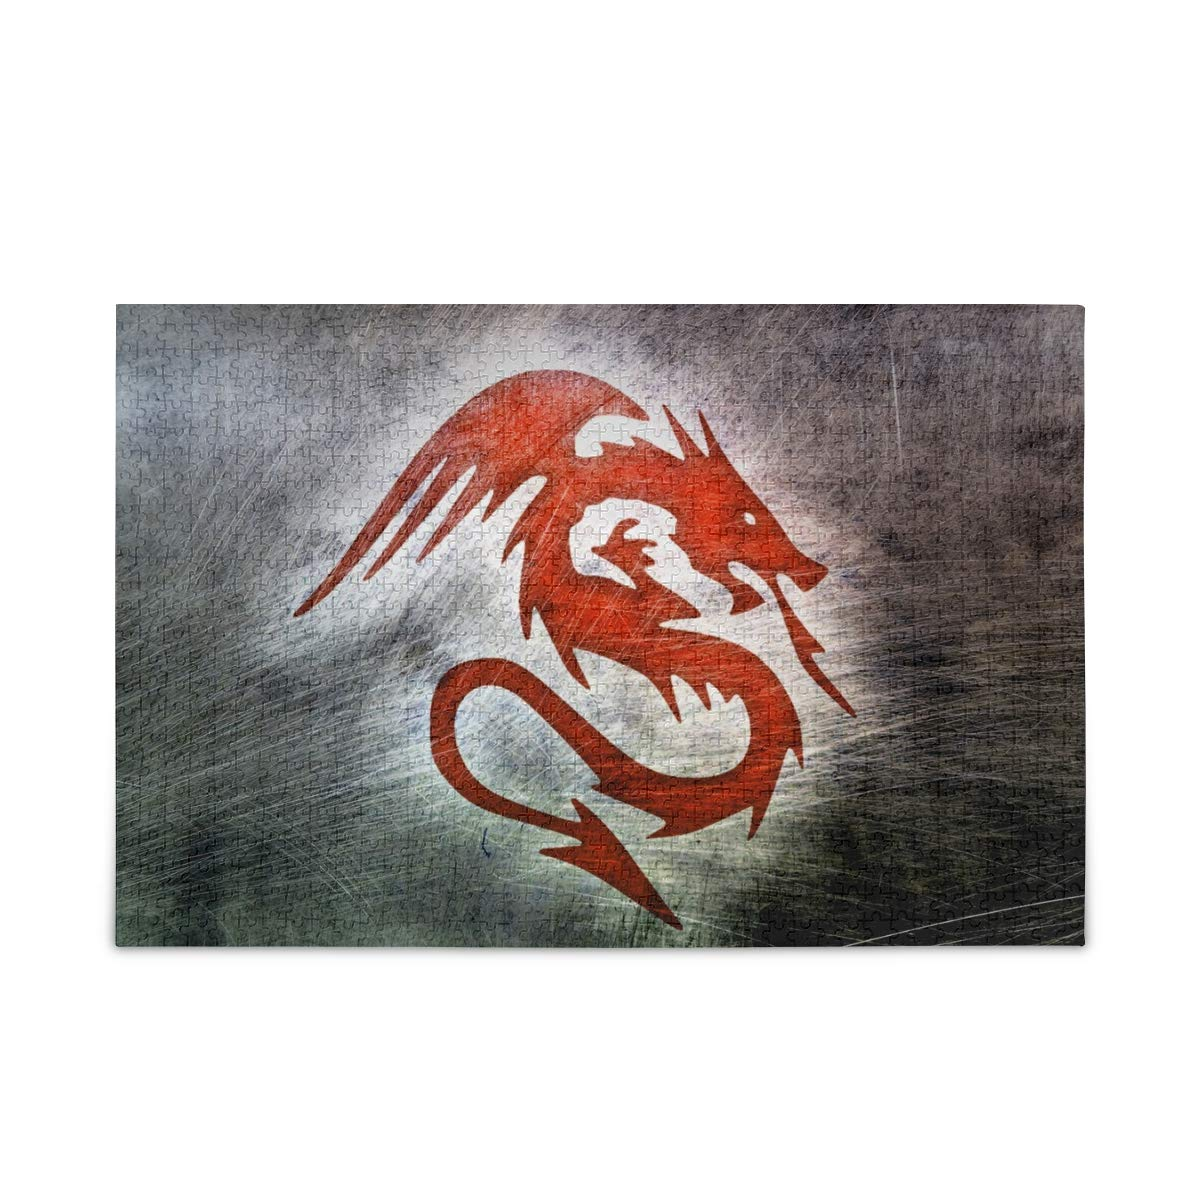 Dragon Puzzle 500 Piece Jigsaw Puzzle Adult – Jigsaw Puzzle(2)